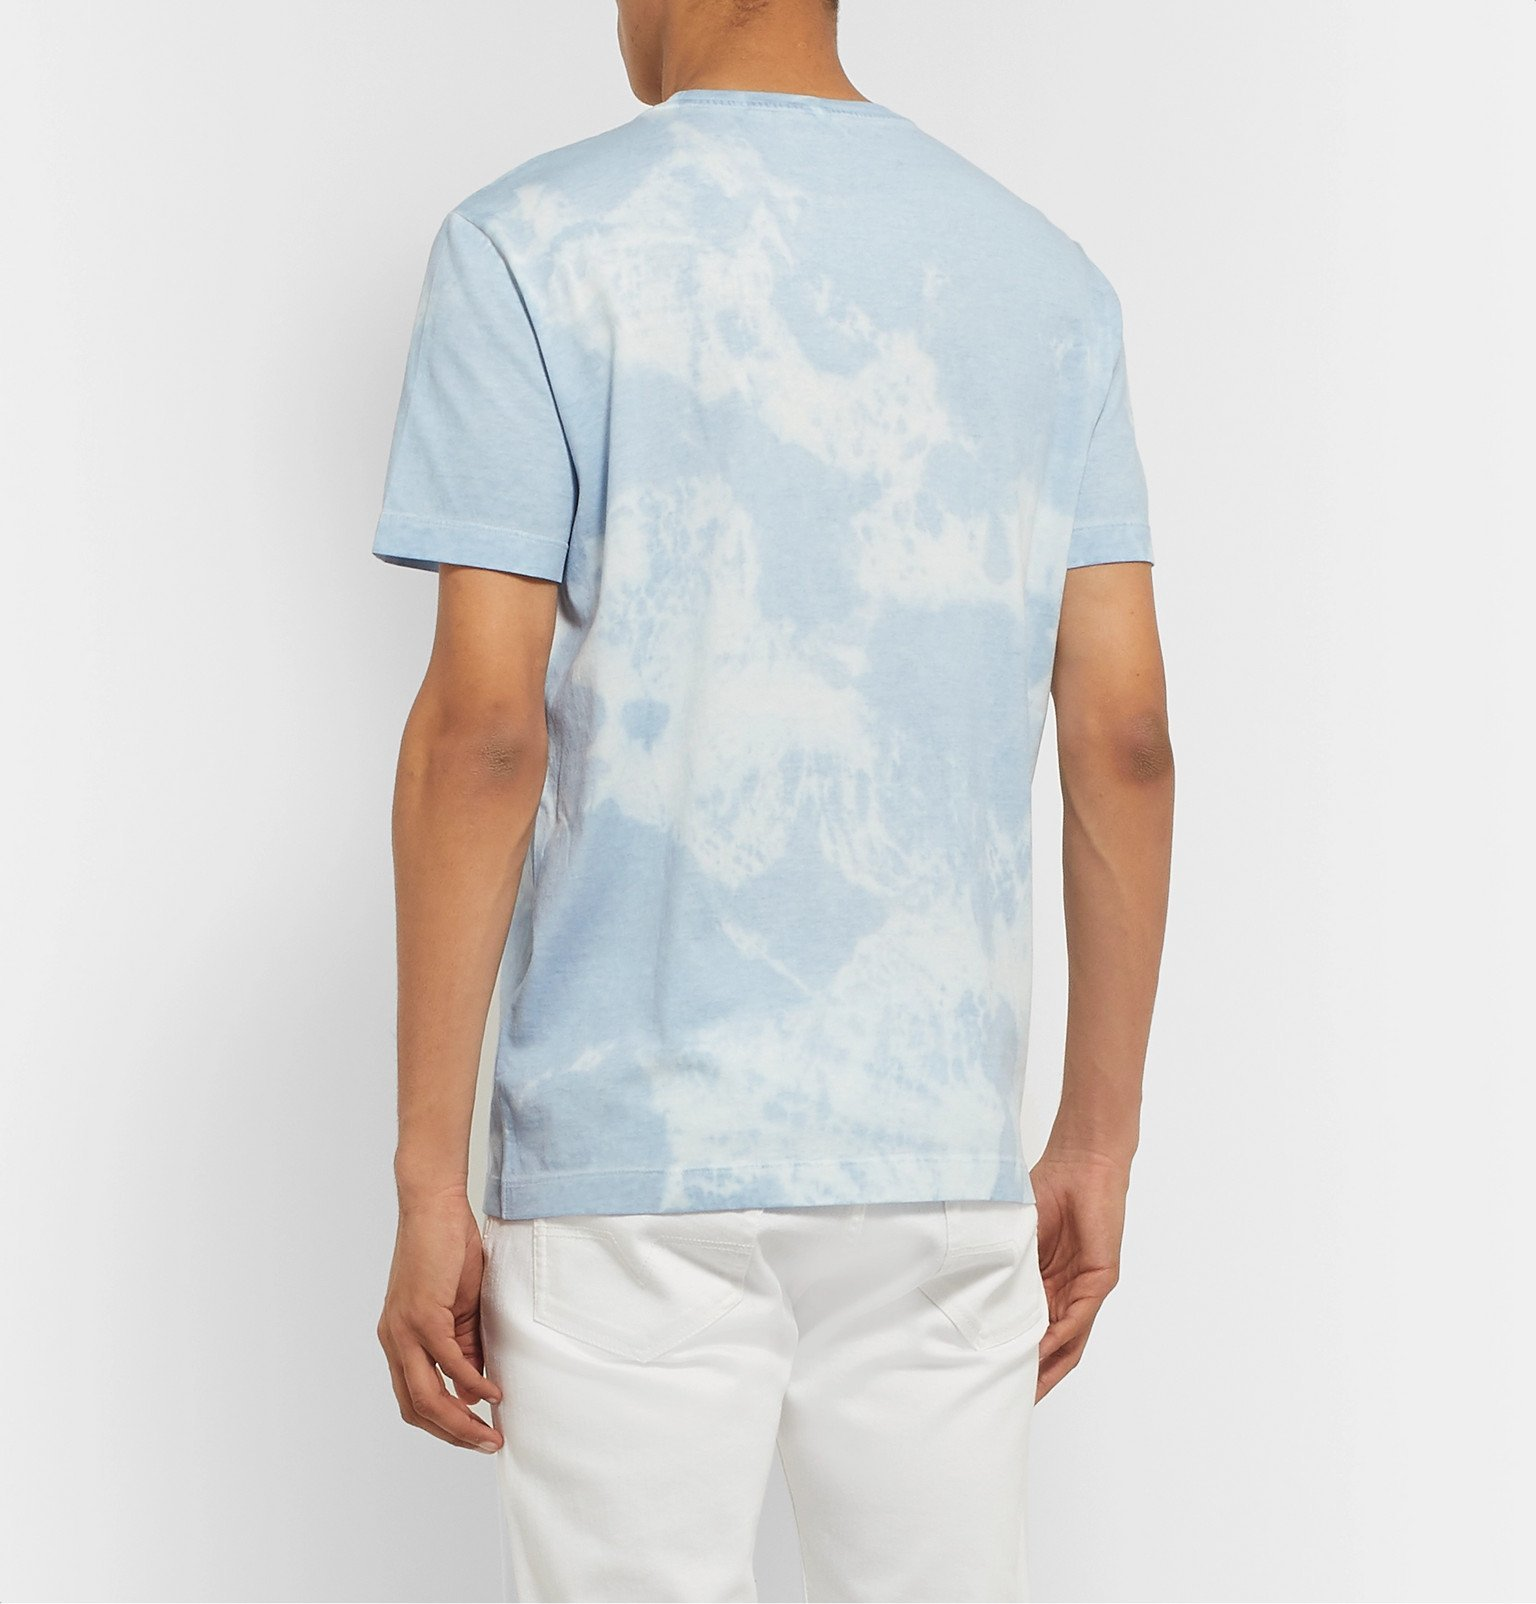 Versace - Logo-Embroidered Tie-Dyed Cotton-Jersey T-Shirt - Blue